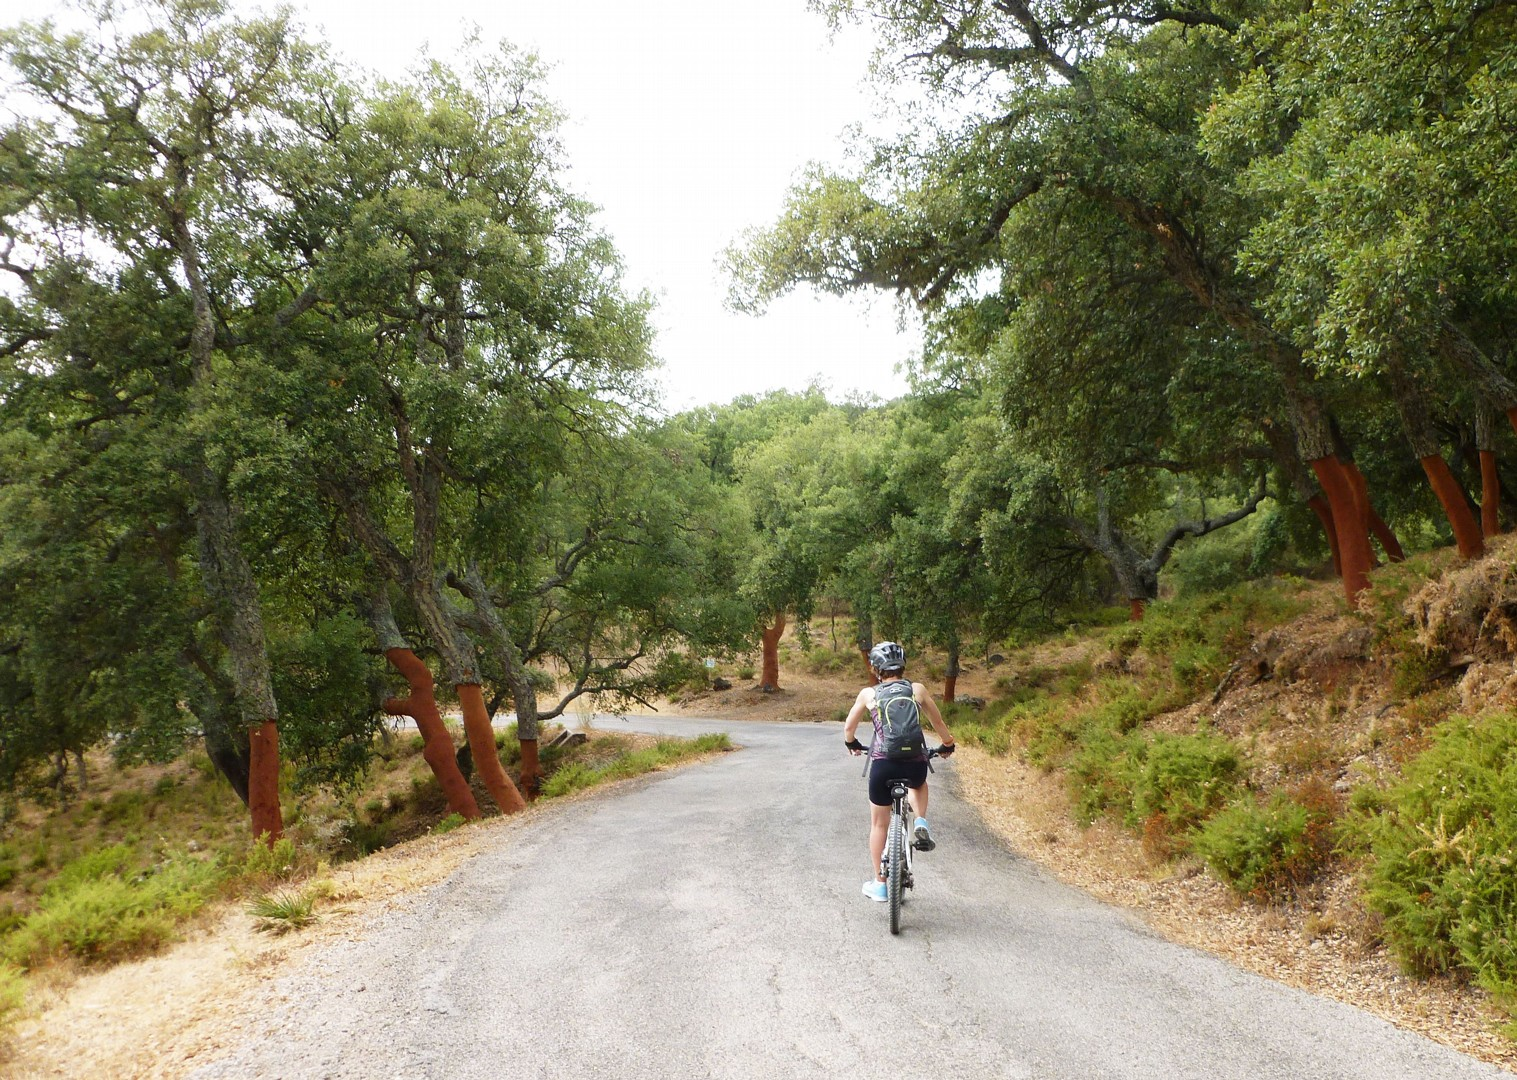 cycling-holiday-in-spain-sierras-to-the-sea.jpg - Southern Spain - Sierras to the Sea - Self-Guided Leisure Cycling Holiday - Leisure Cycling